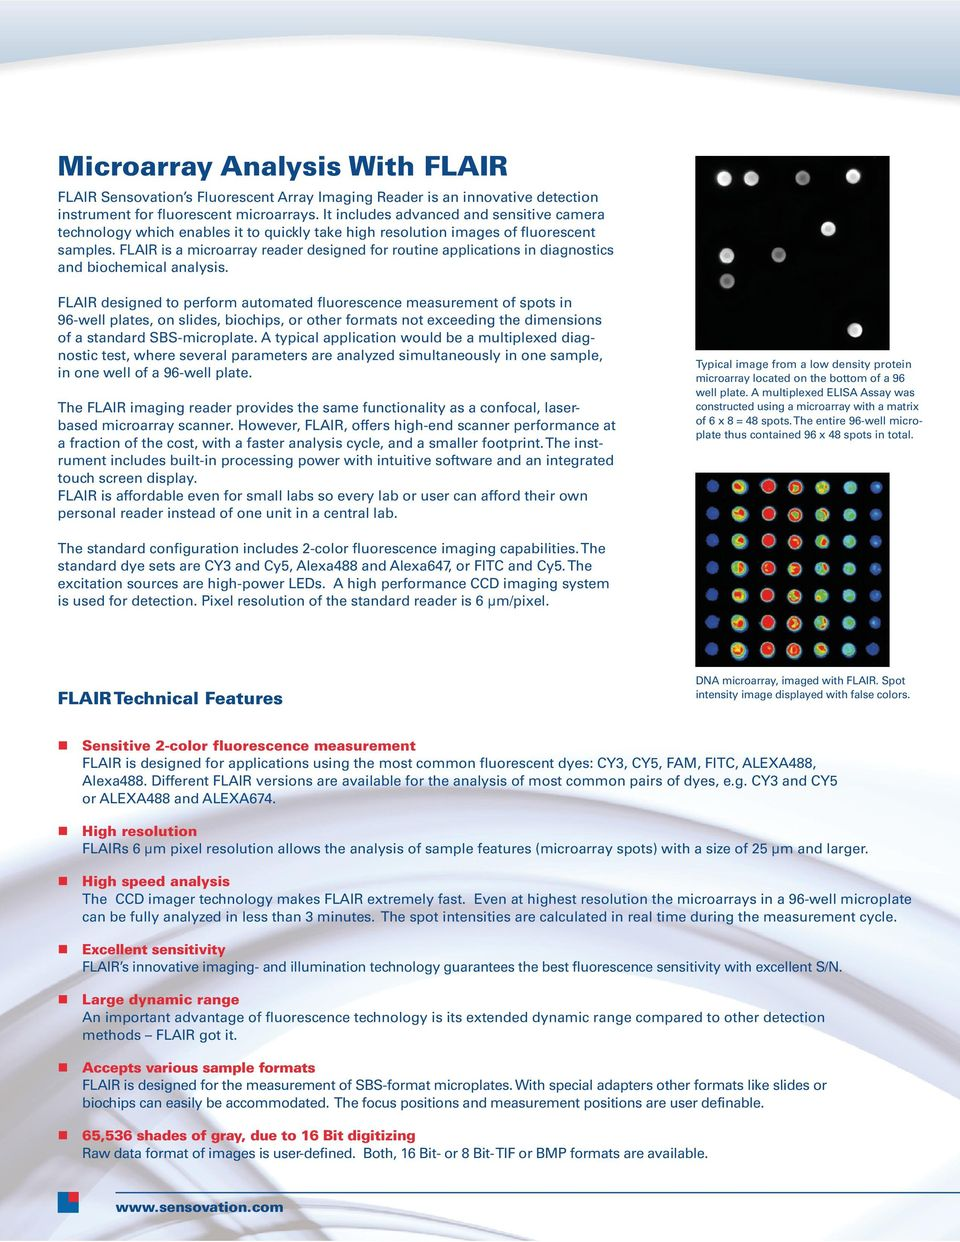 FLAIR is a microarray reader designed for routine applications in diagnostics and biochemical analysis.